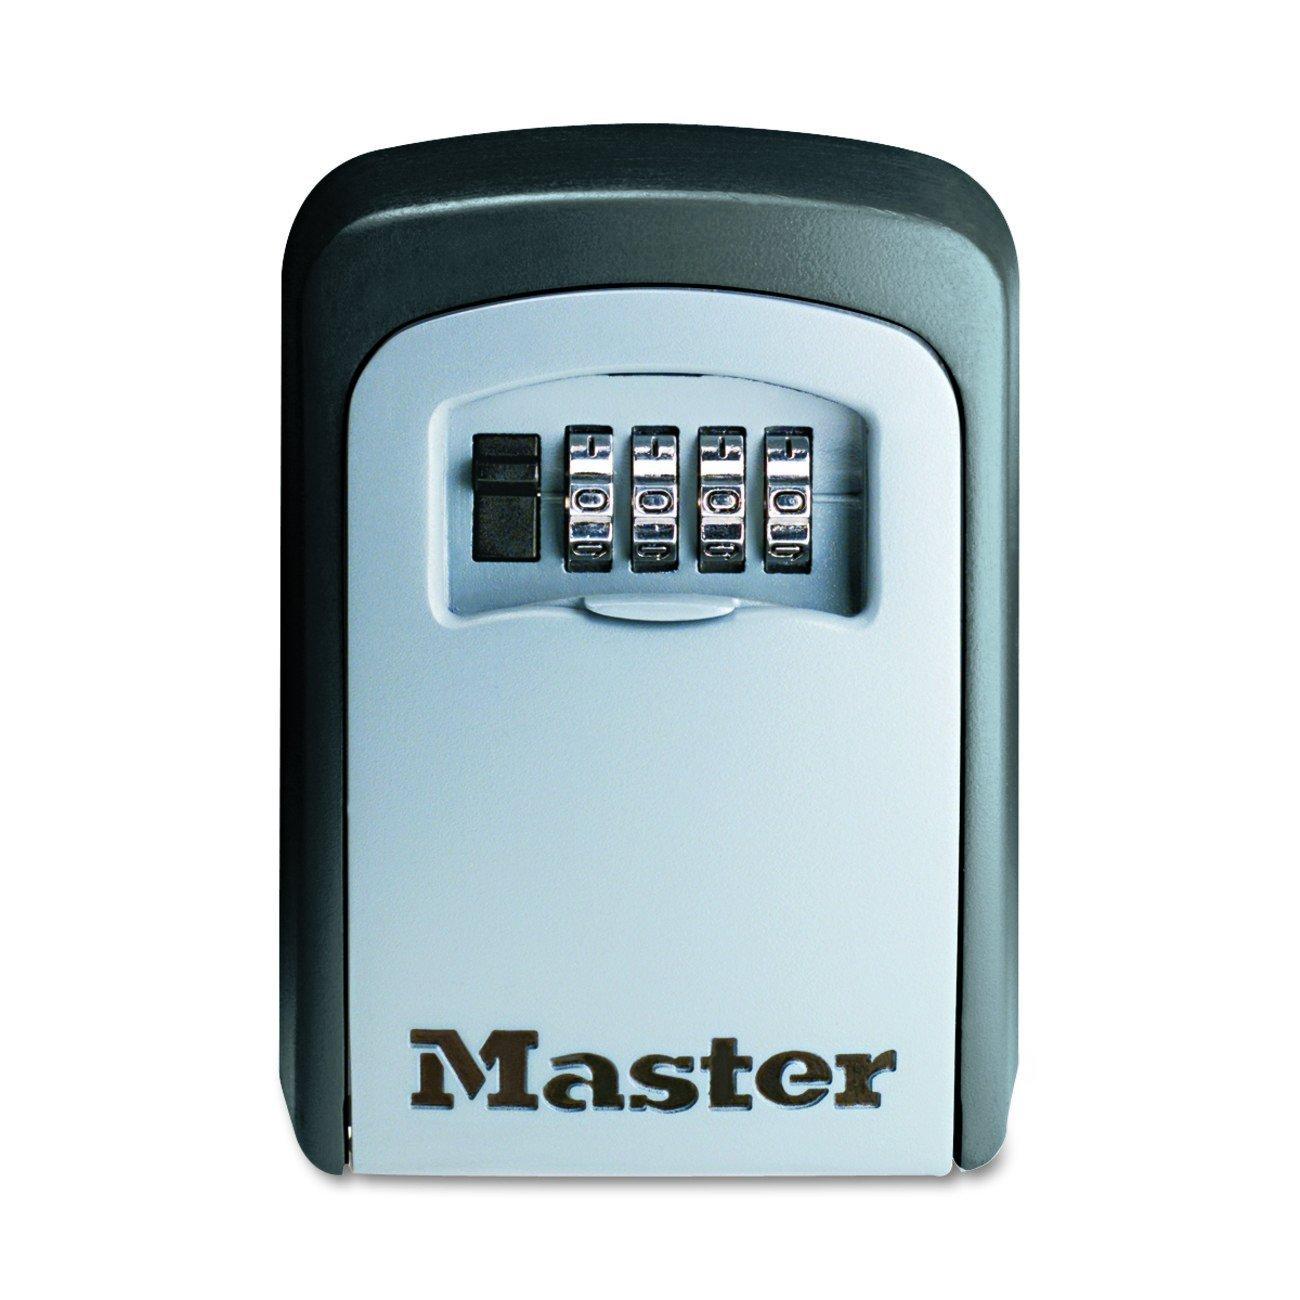 Master Lock 5401D Set Your Own Combination Wall Mount Lock Box, 5 Key Capacity, Black - 5 Pack by Master Lock